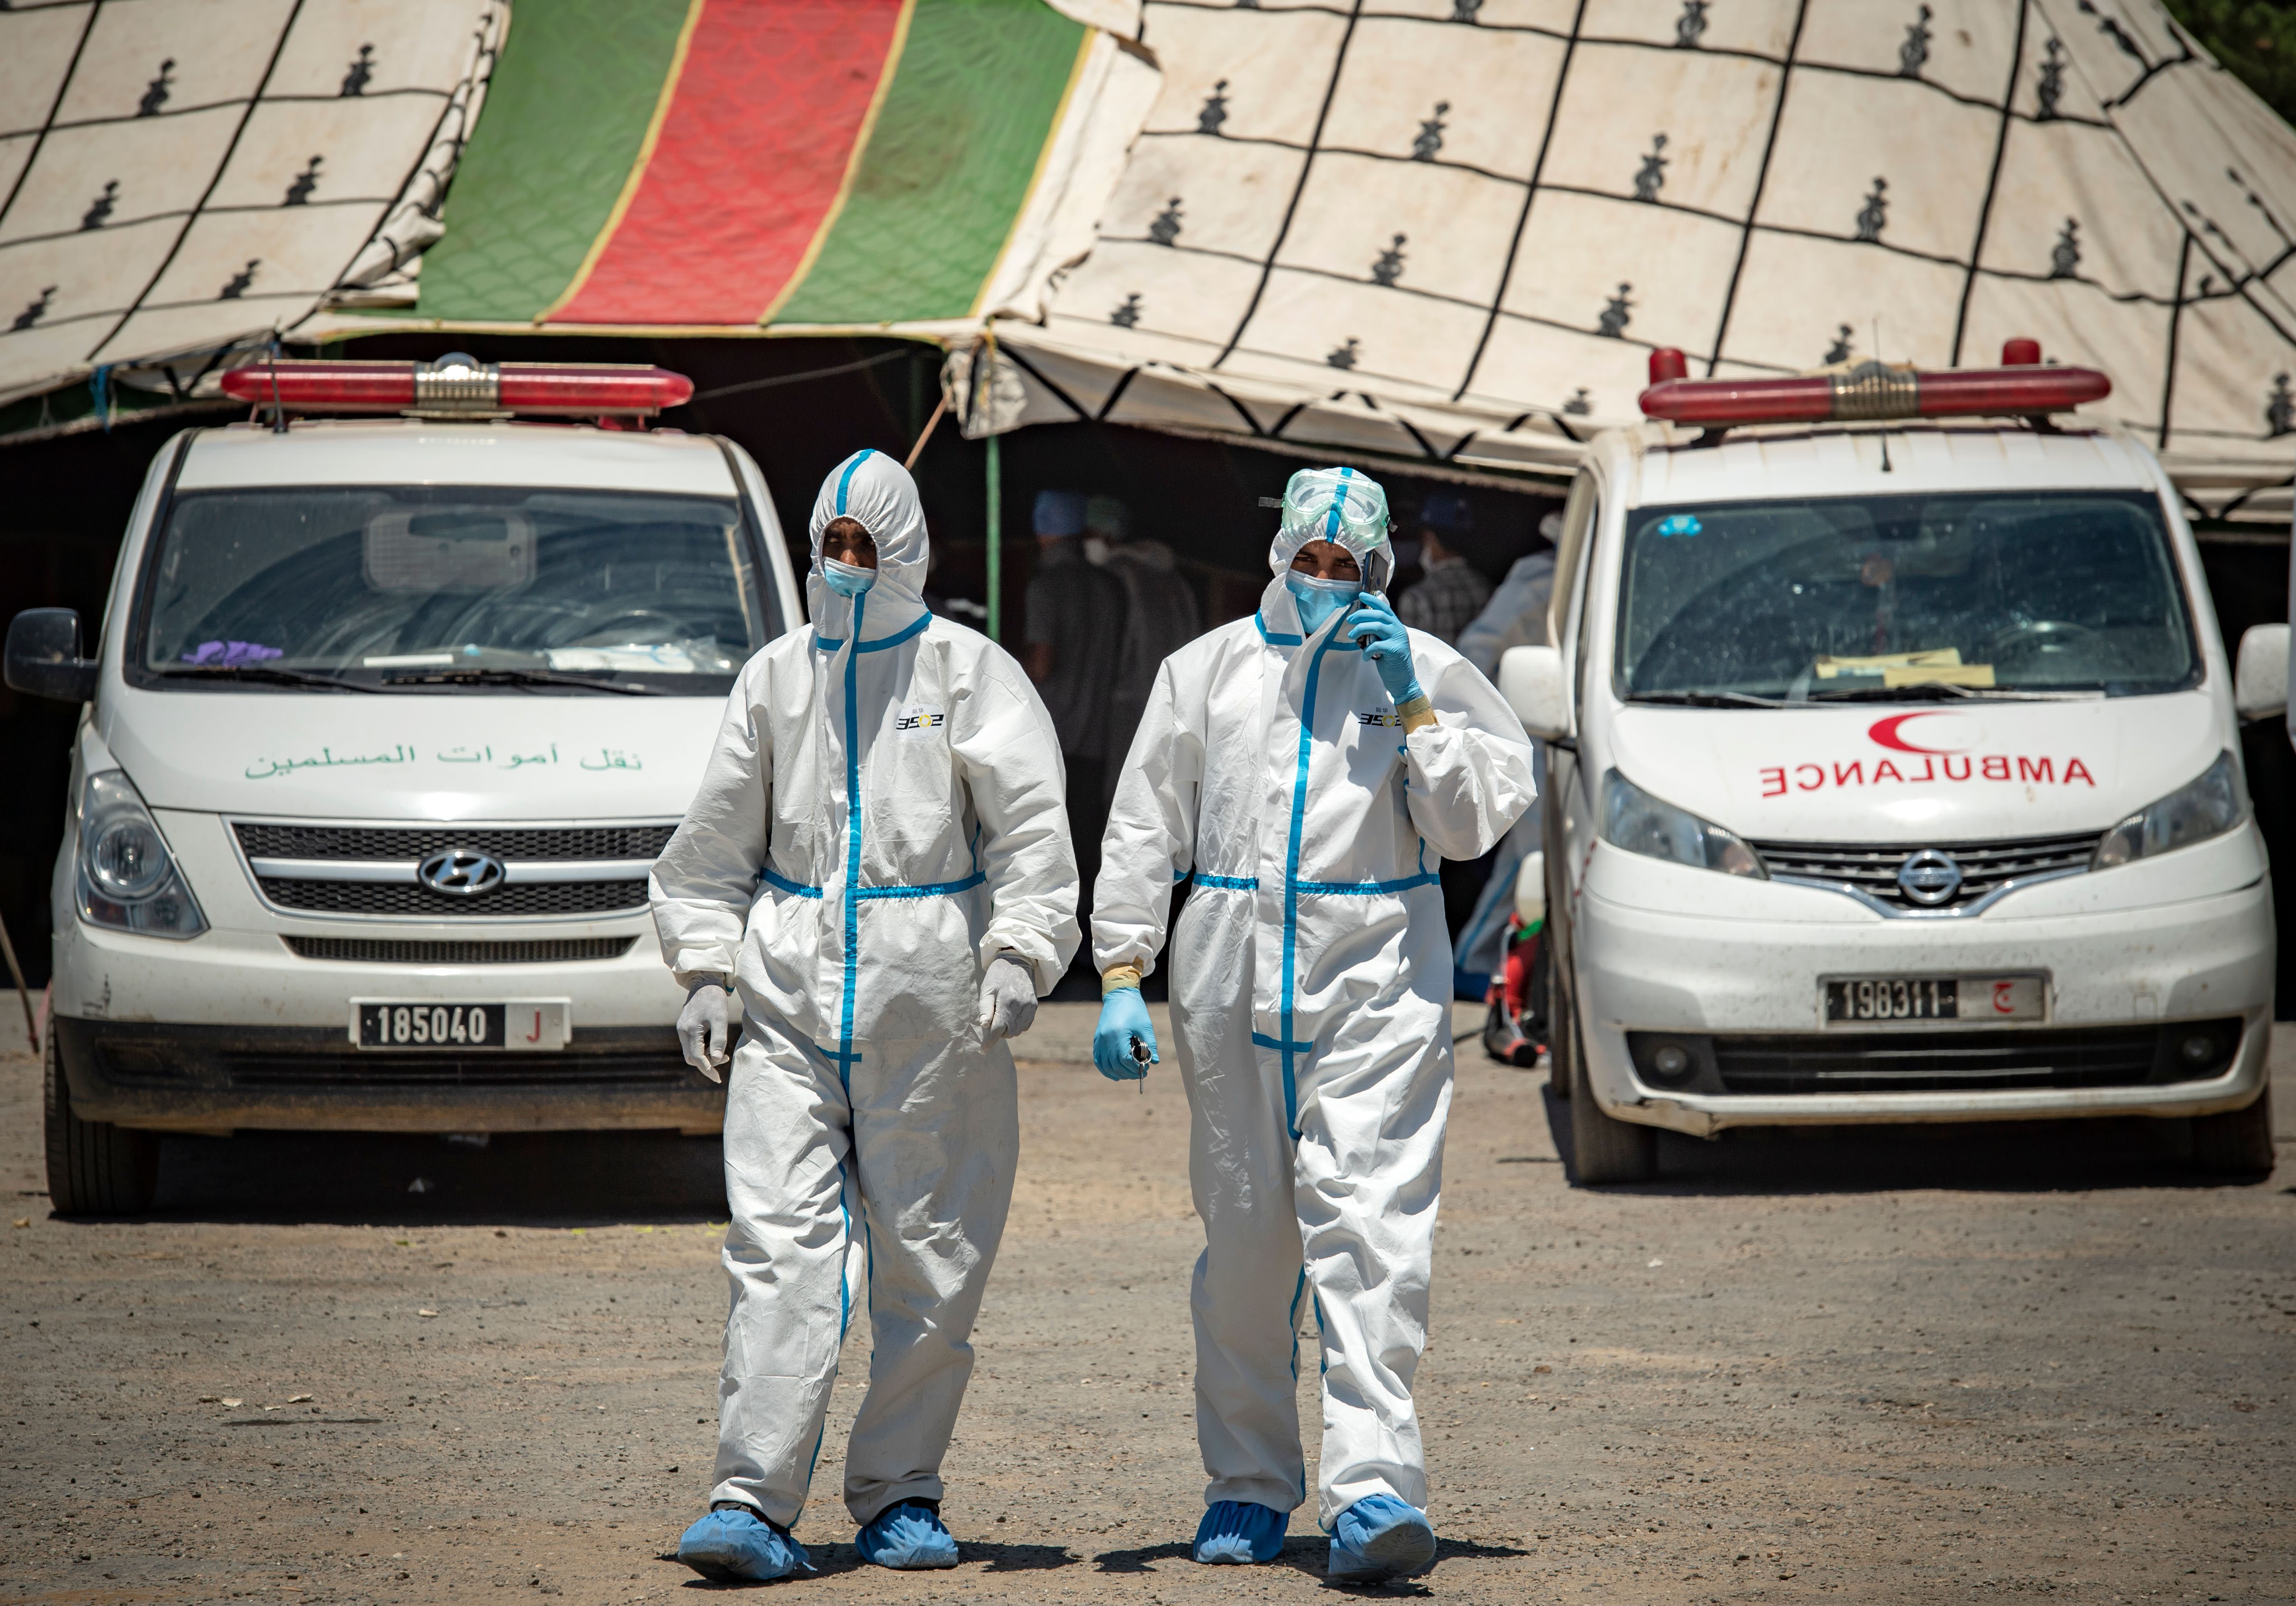 Members of a medical team wait to transfer people who tested positive for Covid-19 at a parking lot in Moulay Bousselham, Morocco, on June 20.